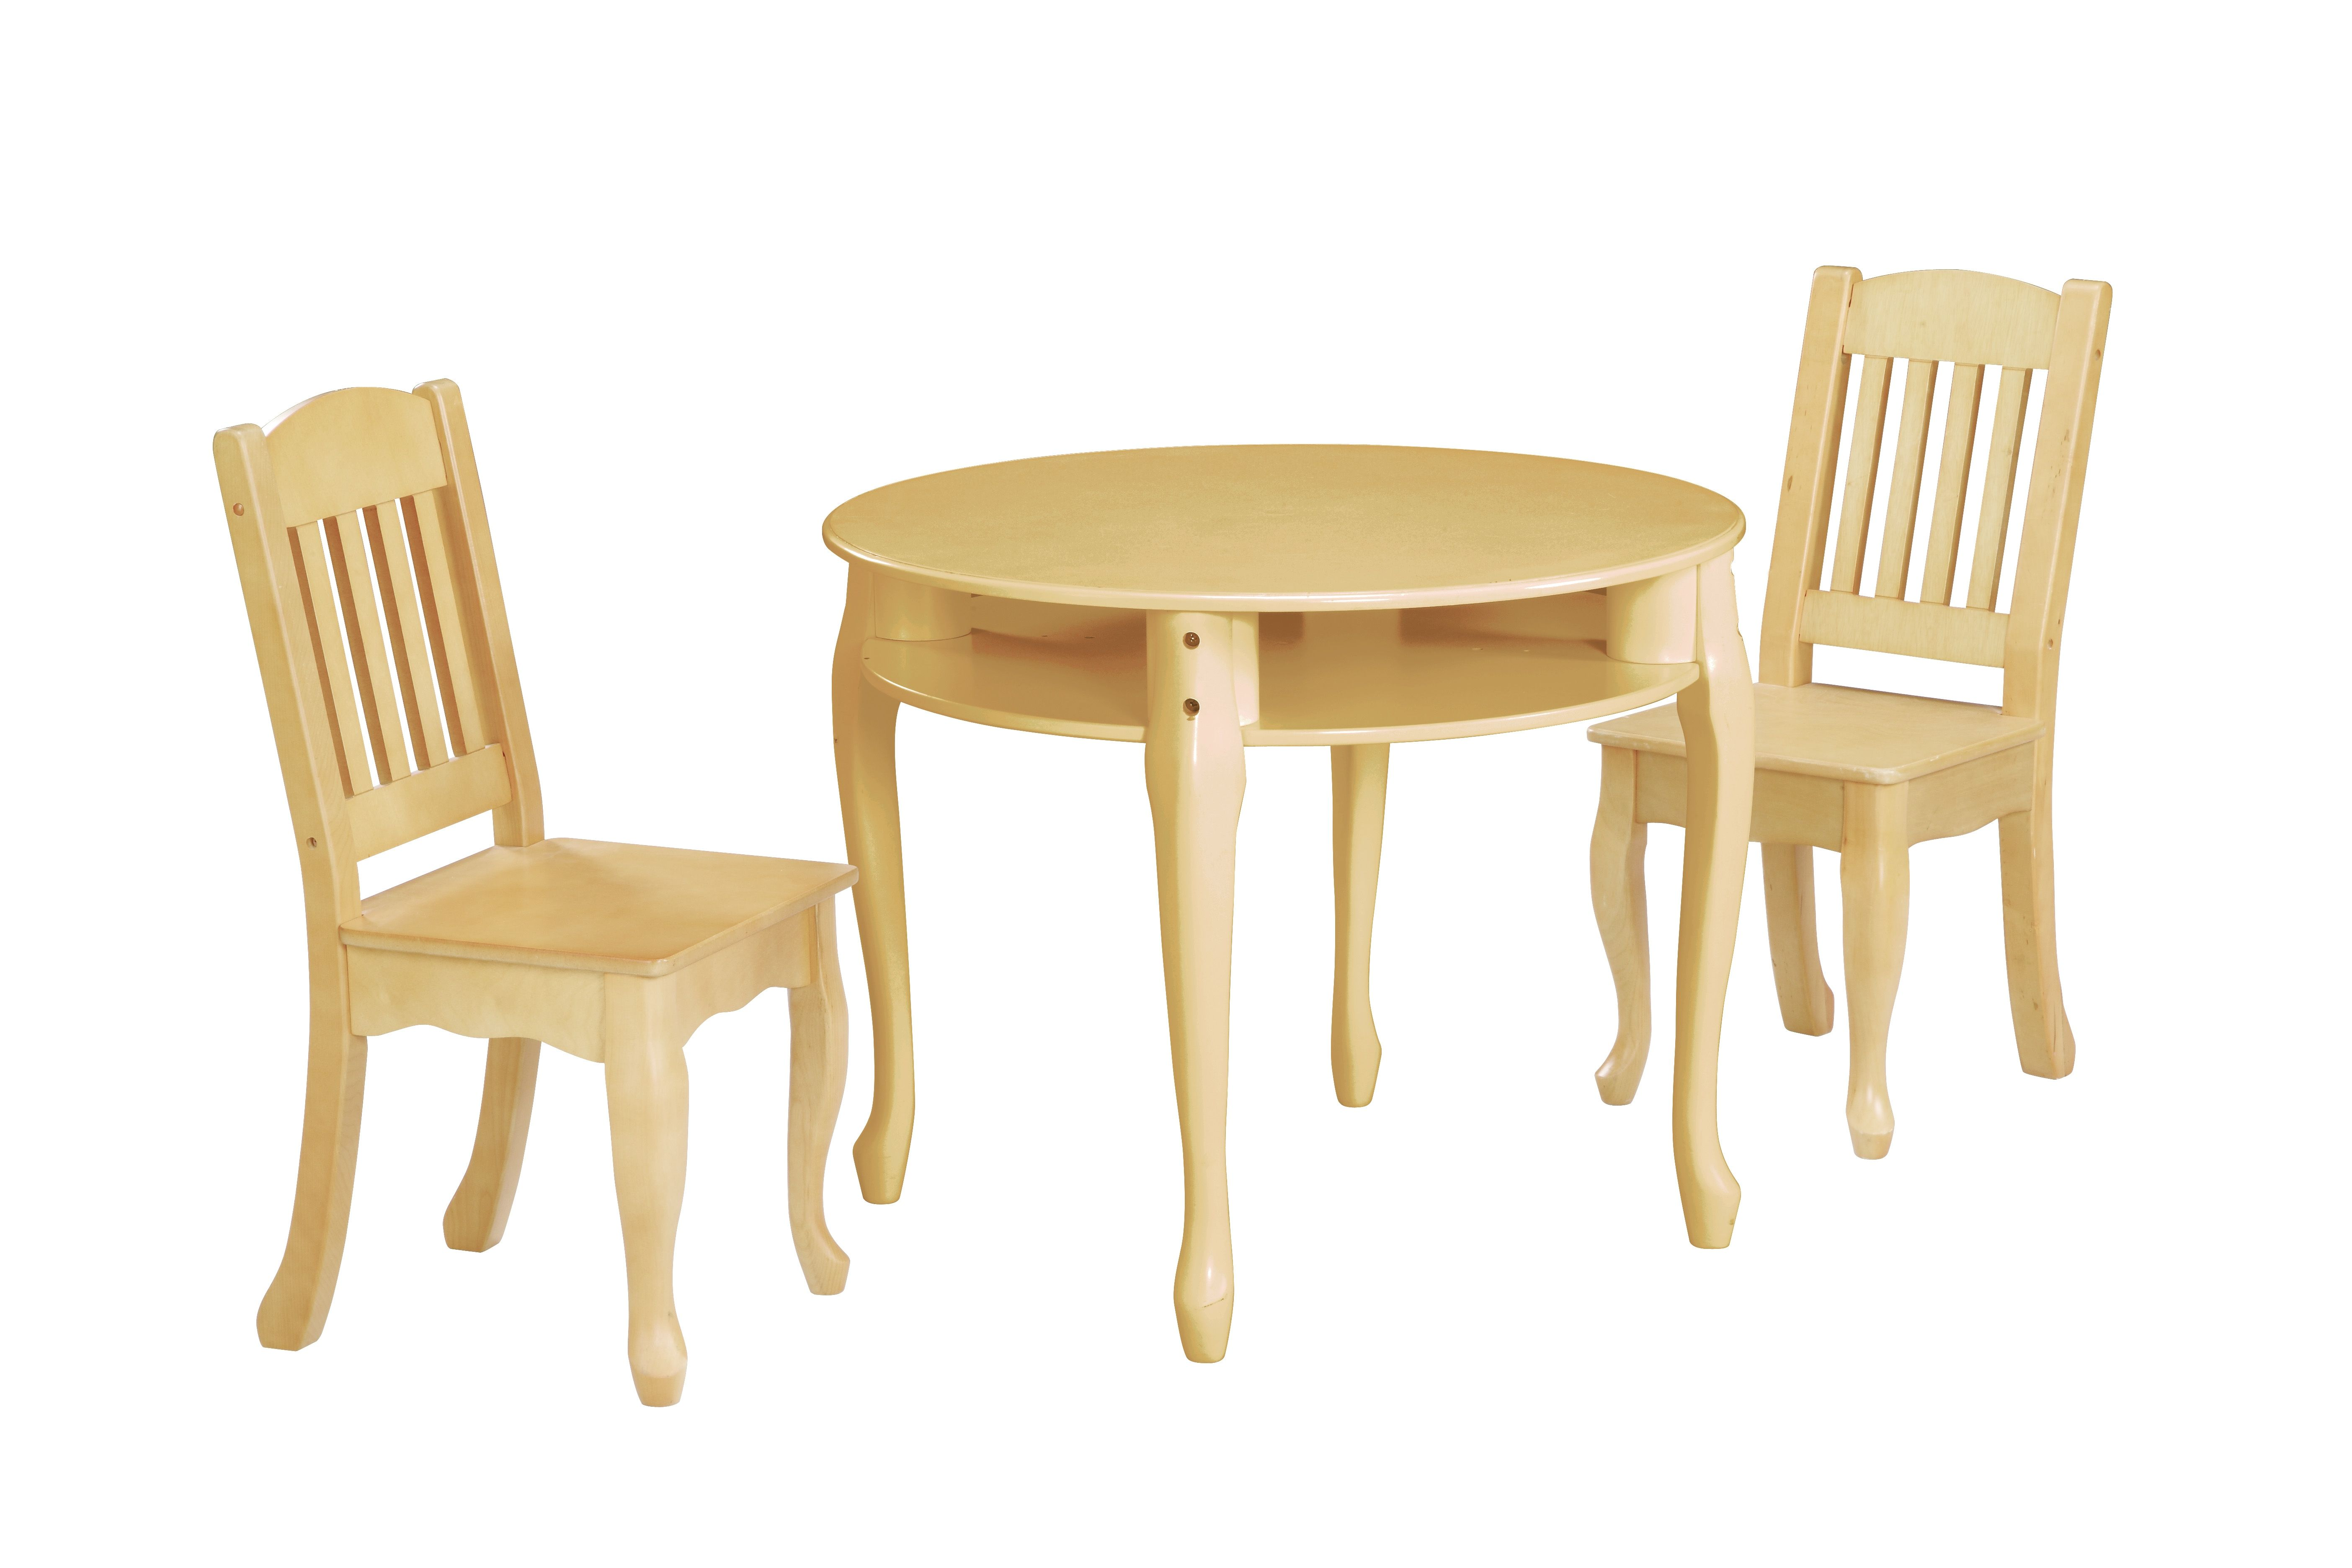 Baby Wooden Table And Chair Set | http://lachpage.com | Pinterest ...